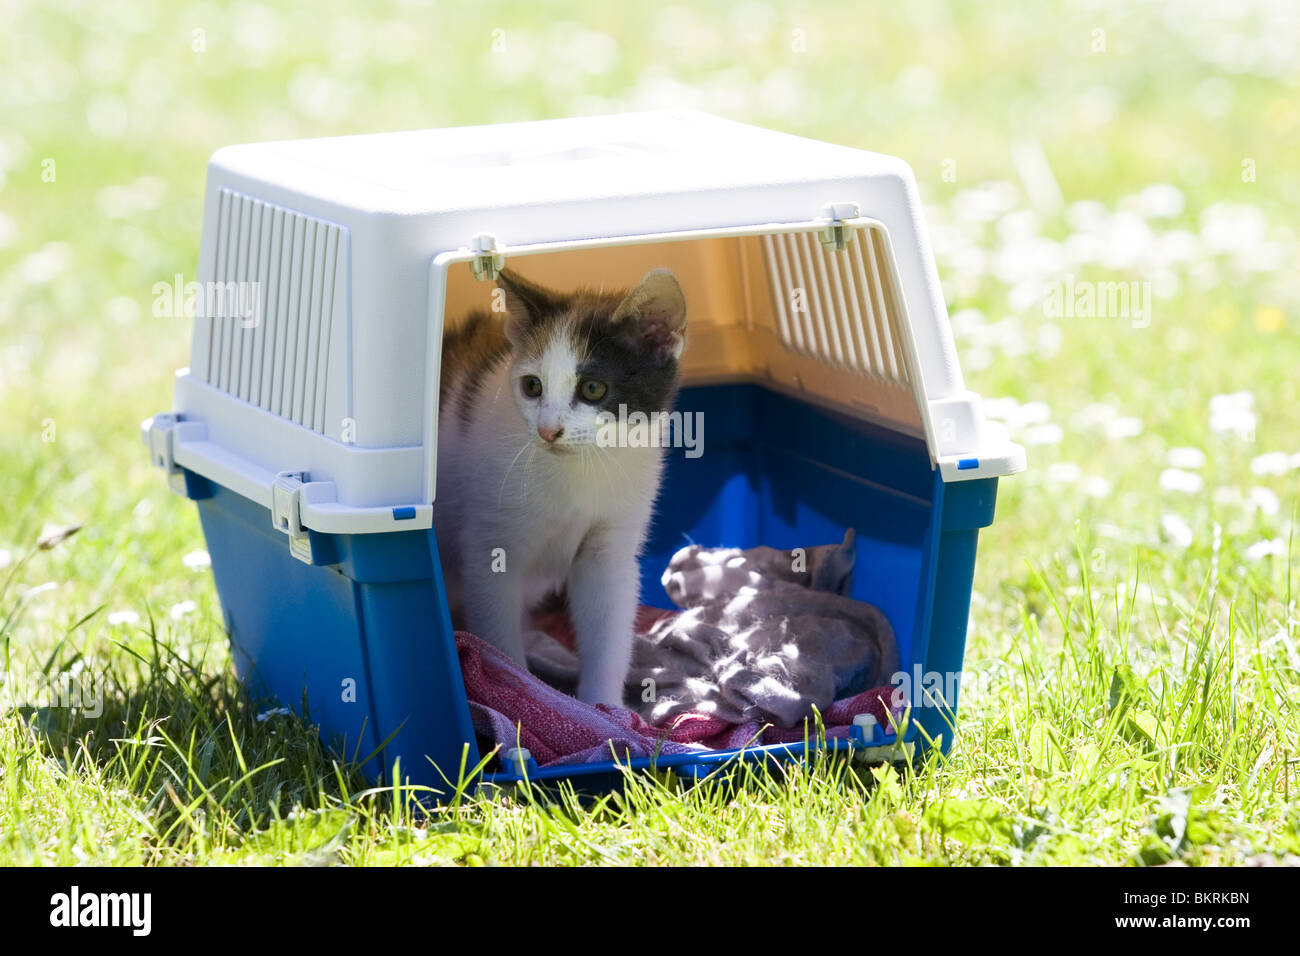 Frightened kitten outside in pet box cat cage - Stock Image